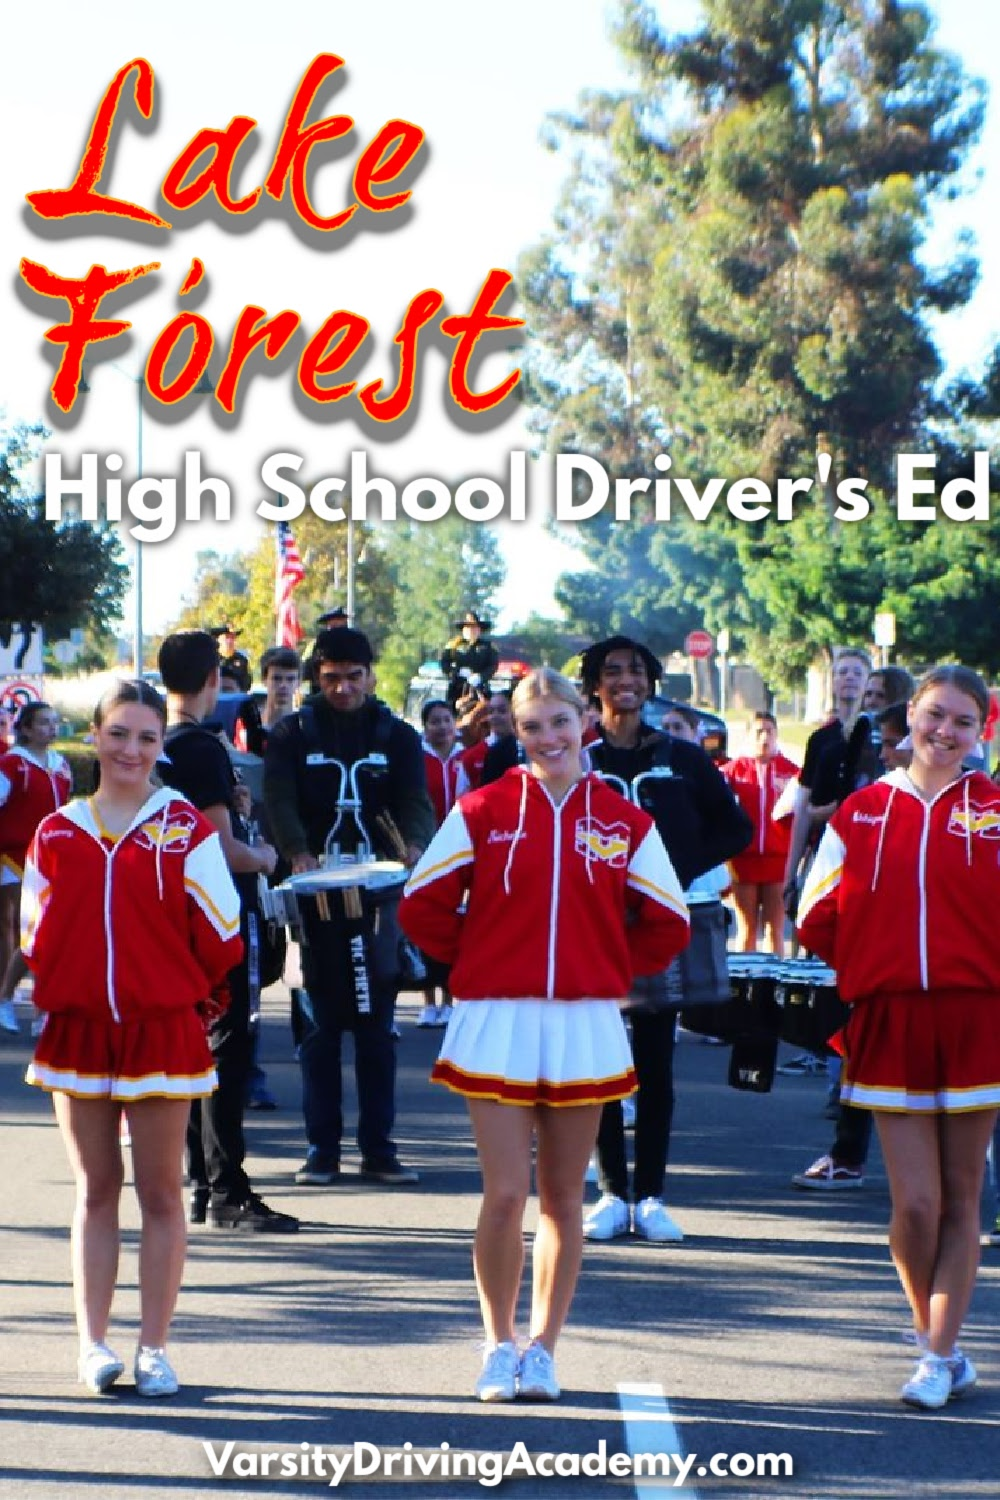 The best Lake Forest high school drivers ed is Varsity Driving Academy where teens learn how to drive at the best driving school in Lake Forest.